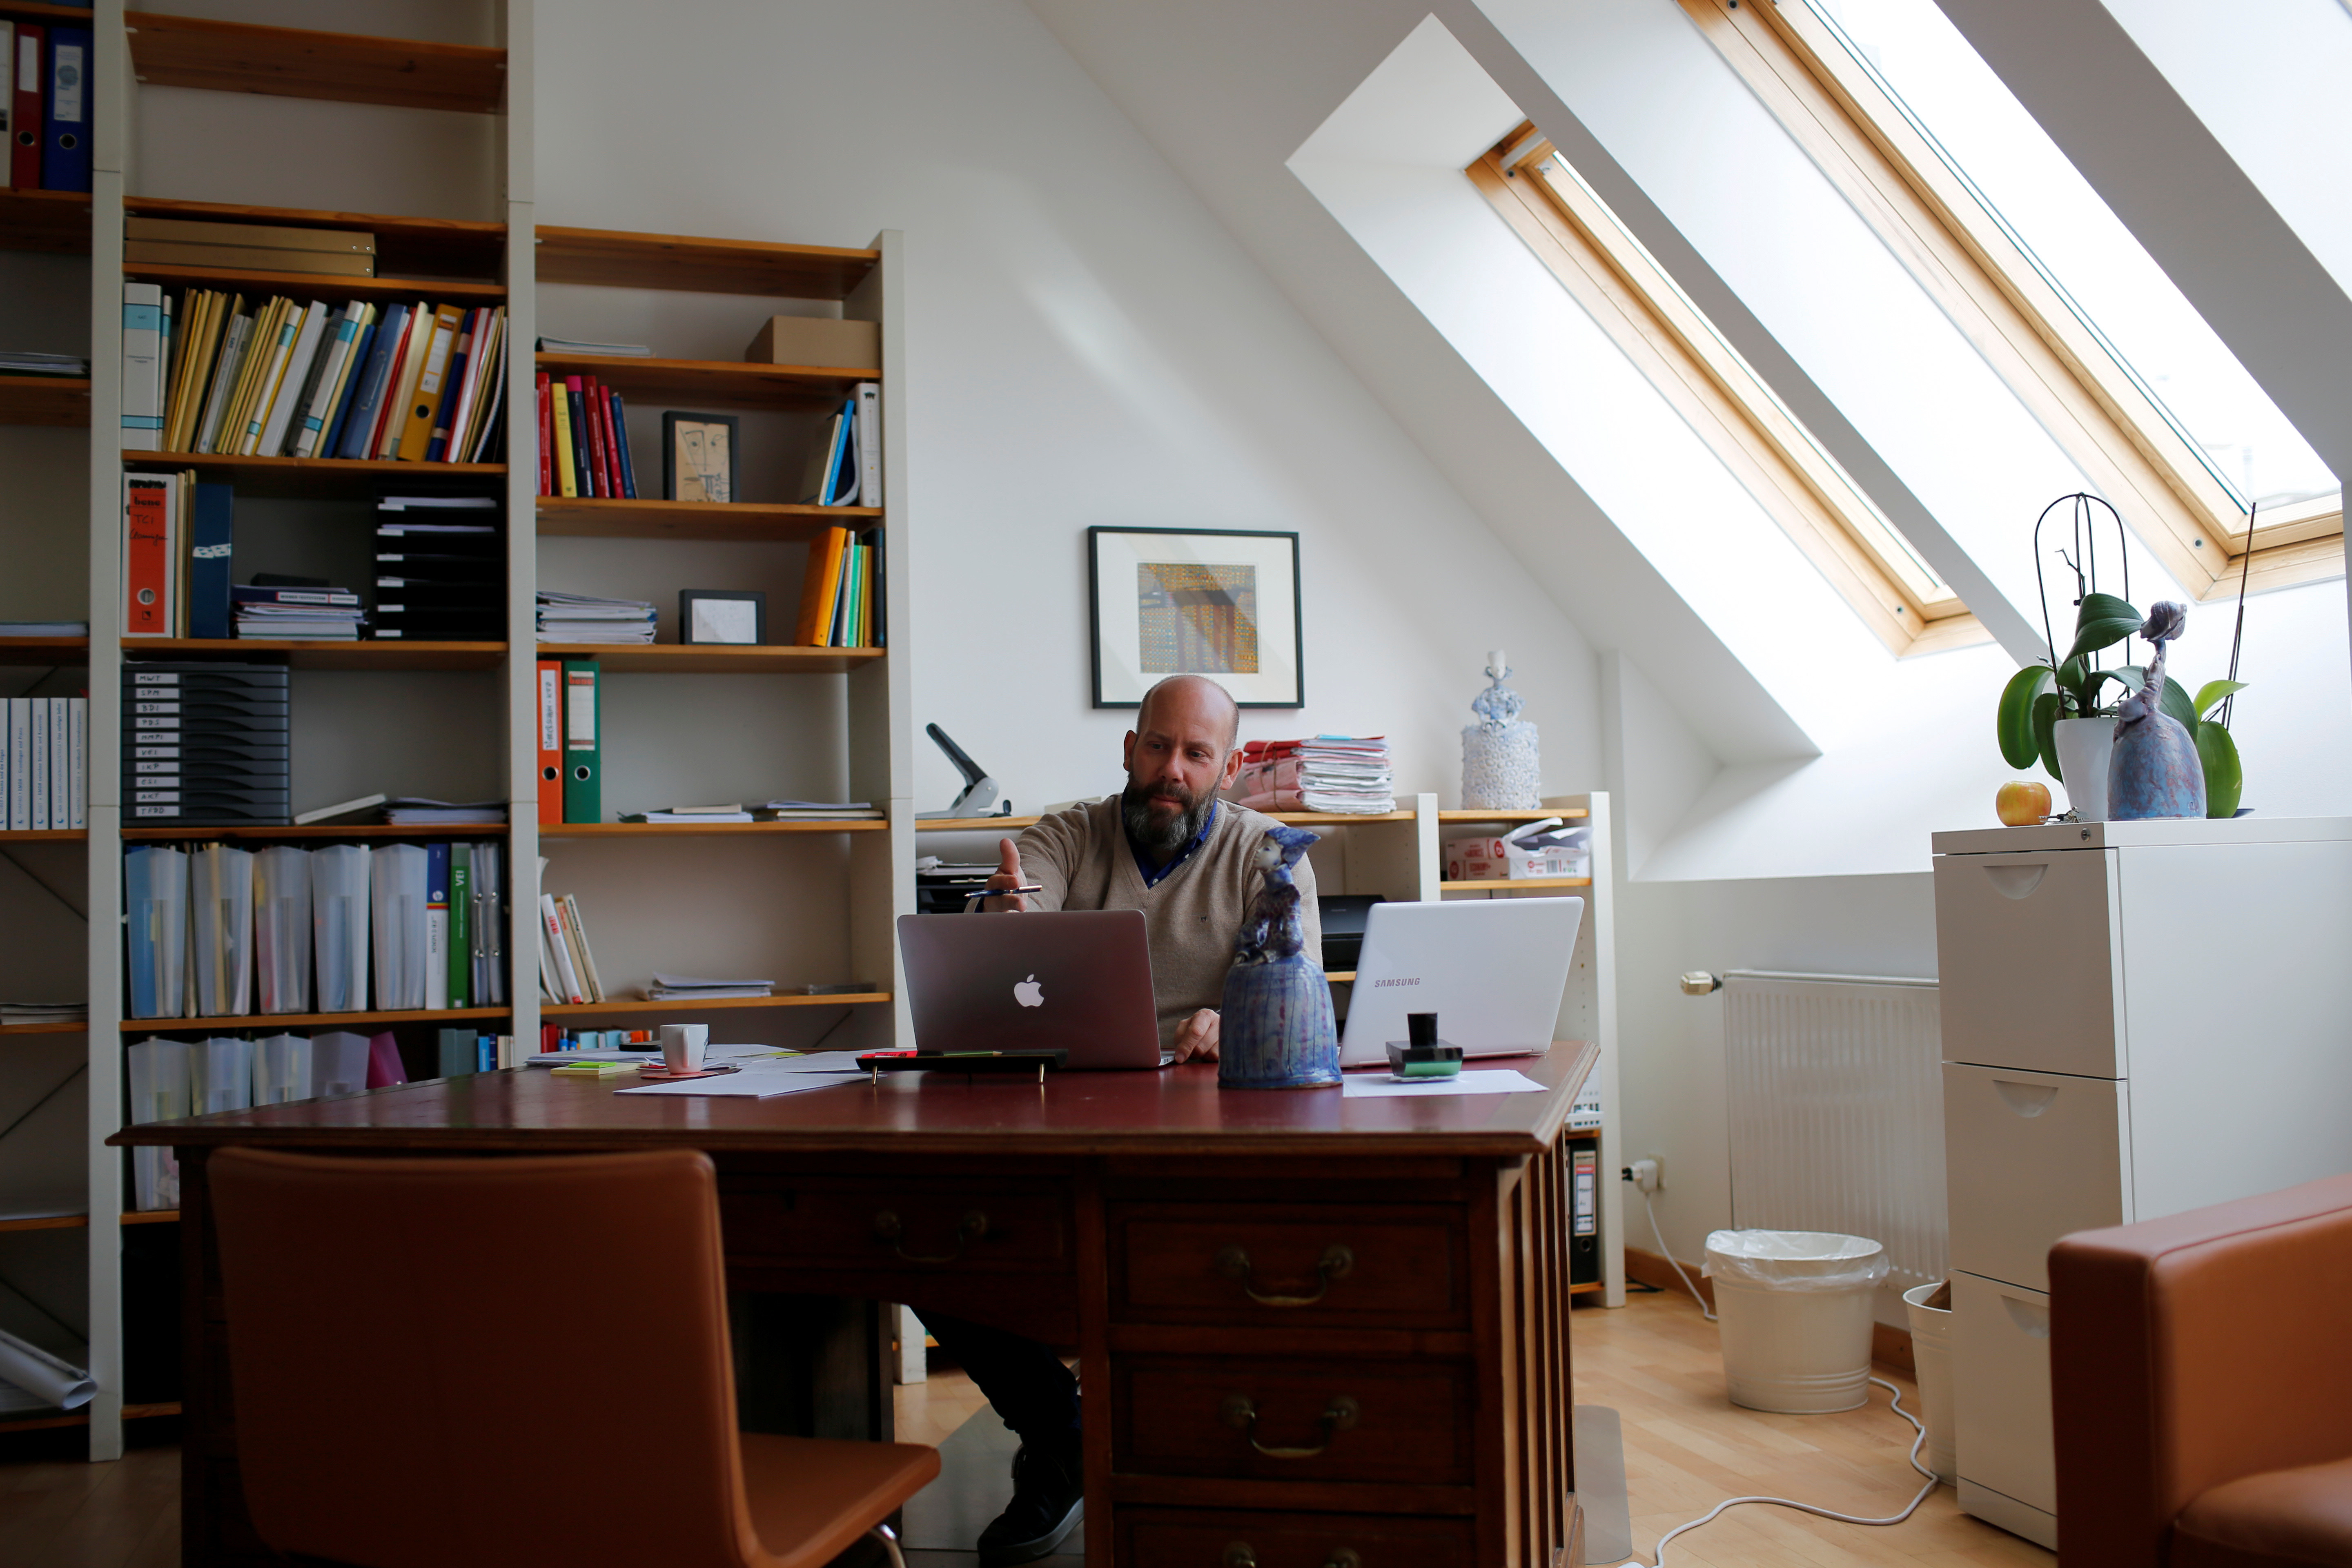 Self-employed psychologist Wolfgang Neuwirth gestures in front of a laptop inside his office.